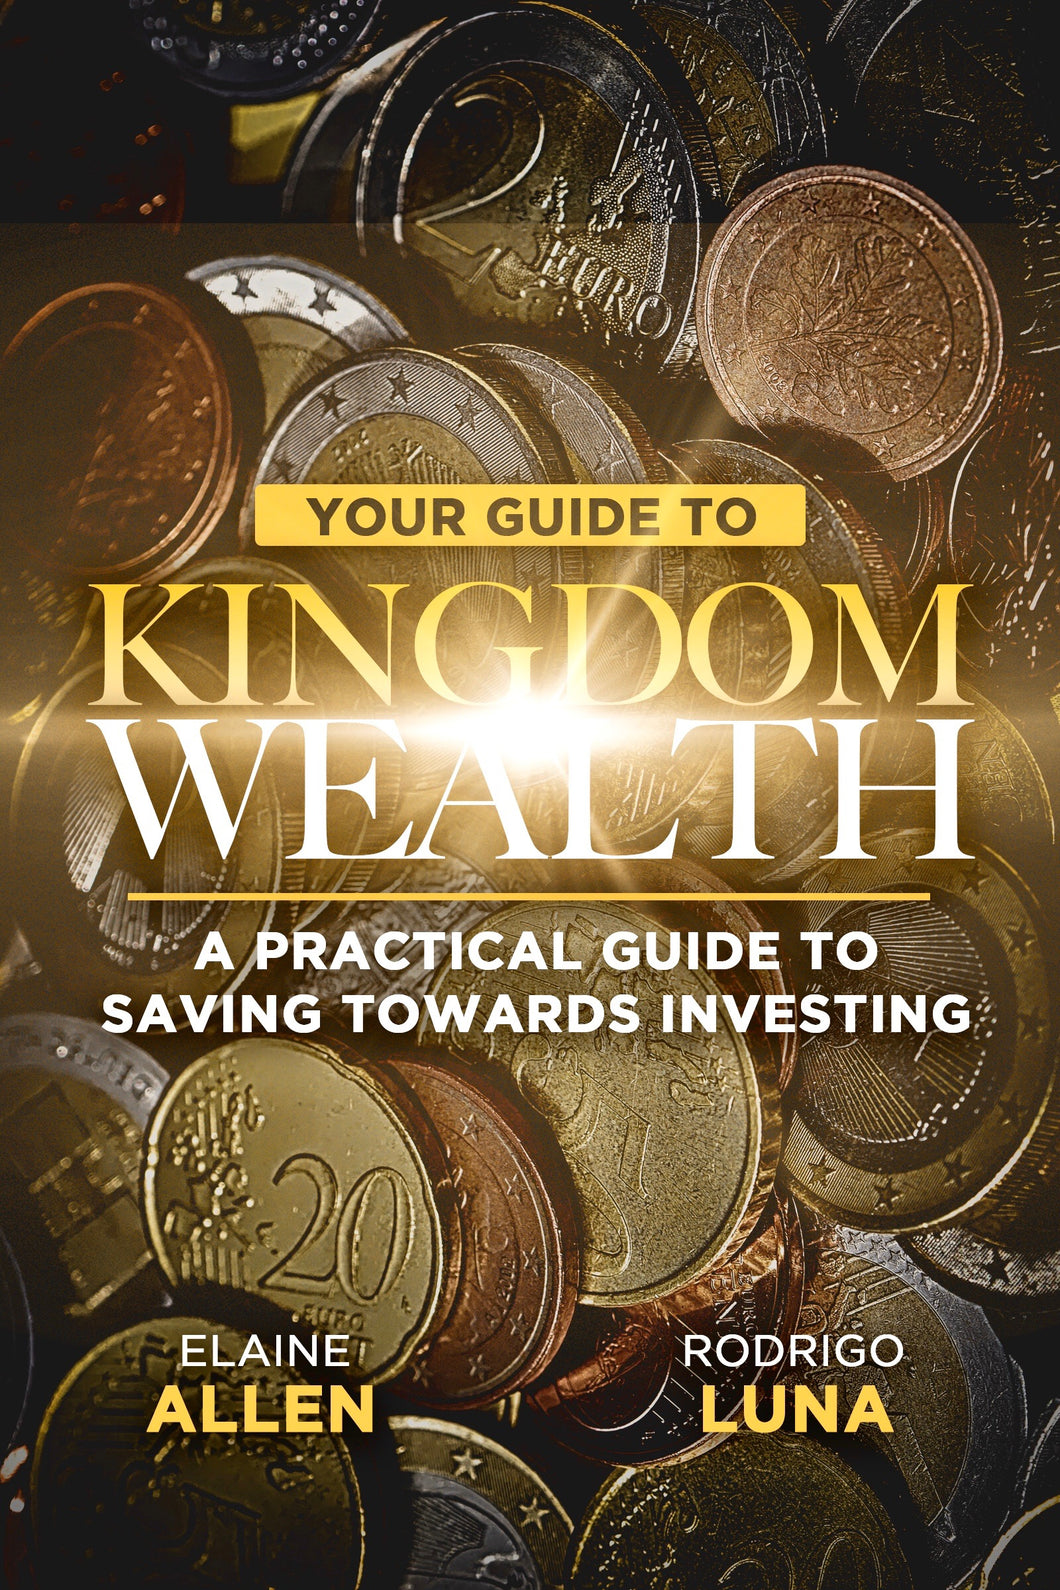 Kingdom Wealth, Practical Guideline To Saving Towards Investing